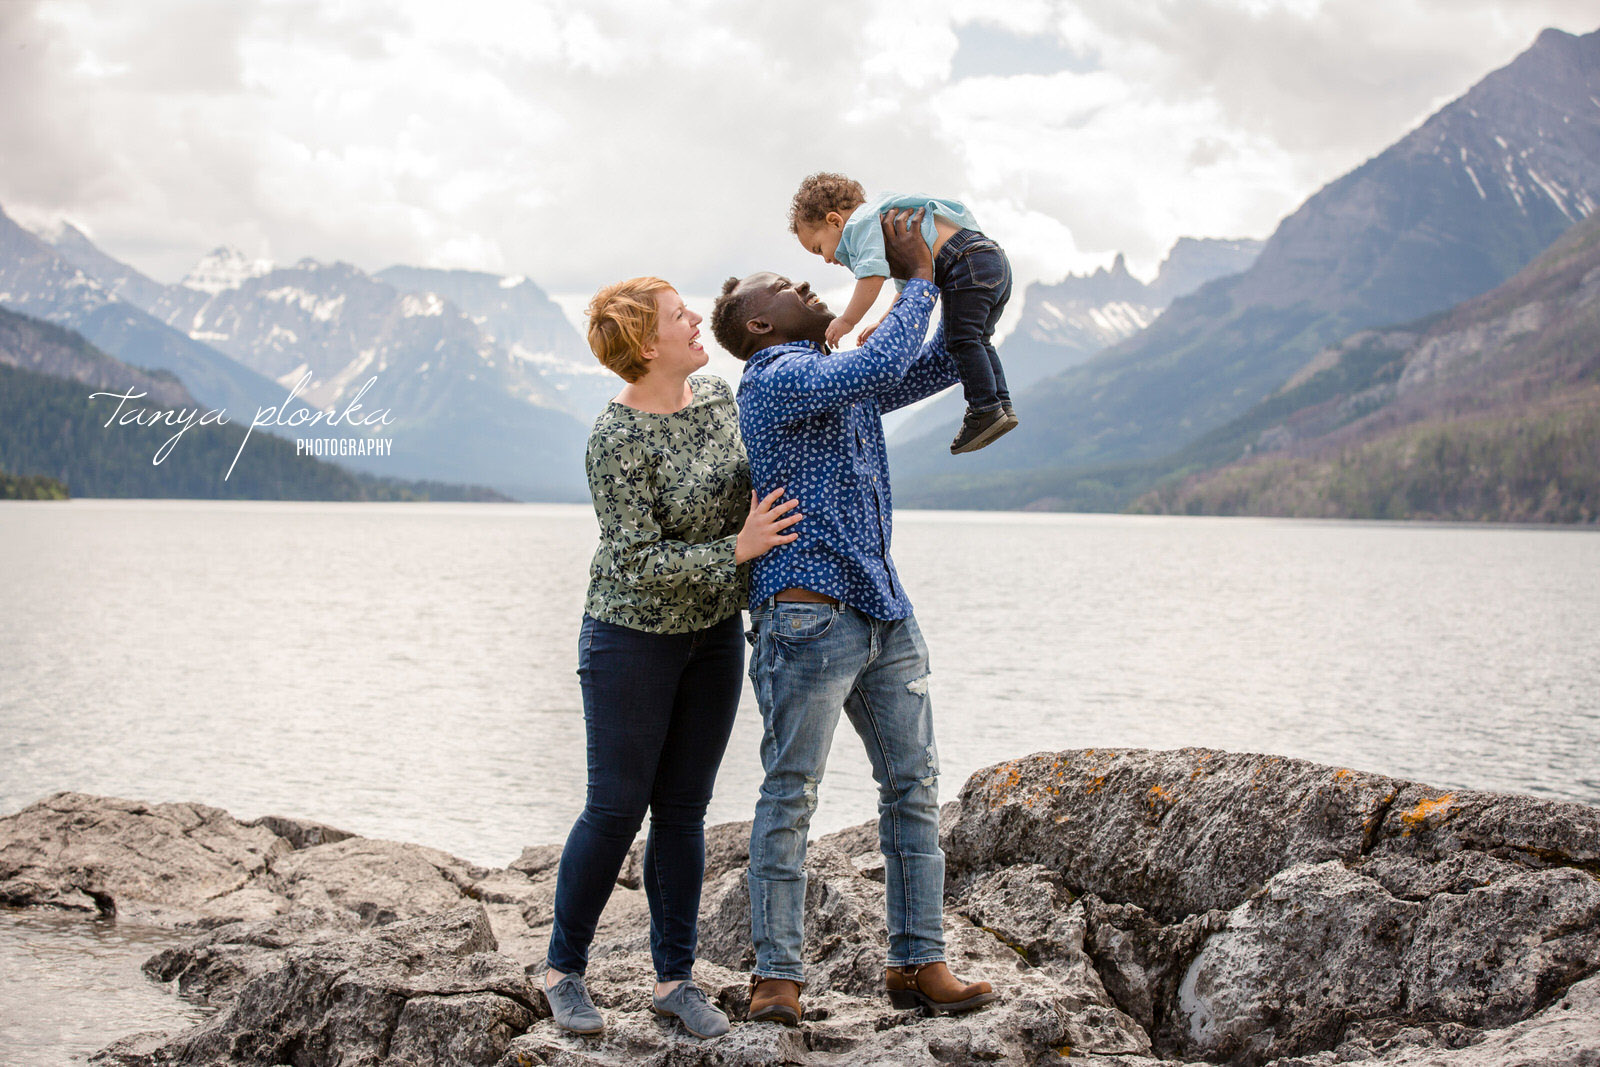 mom stands behind dad lifting toddler in front of lake and mountain view